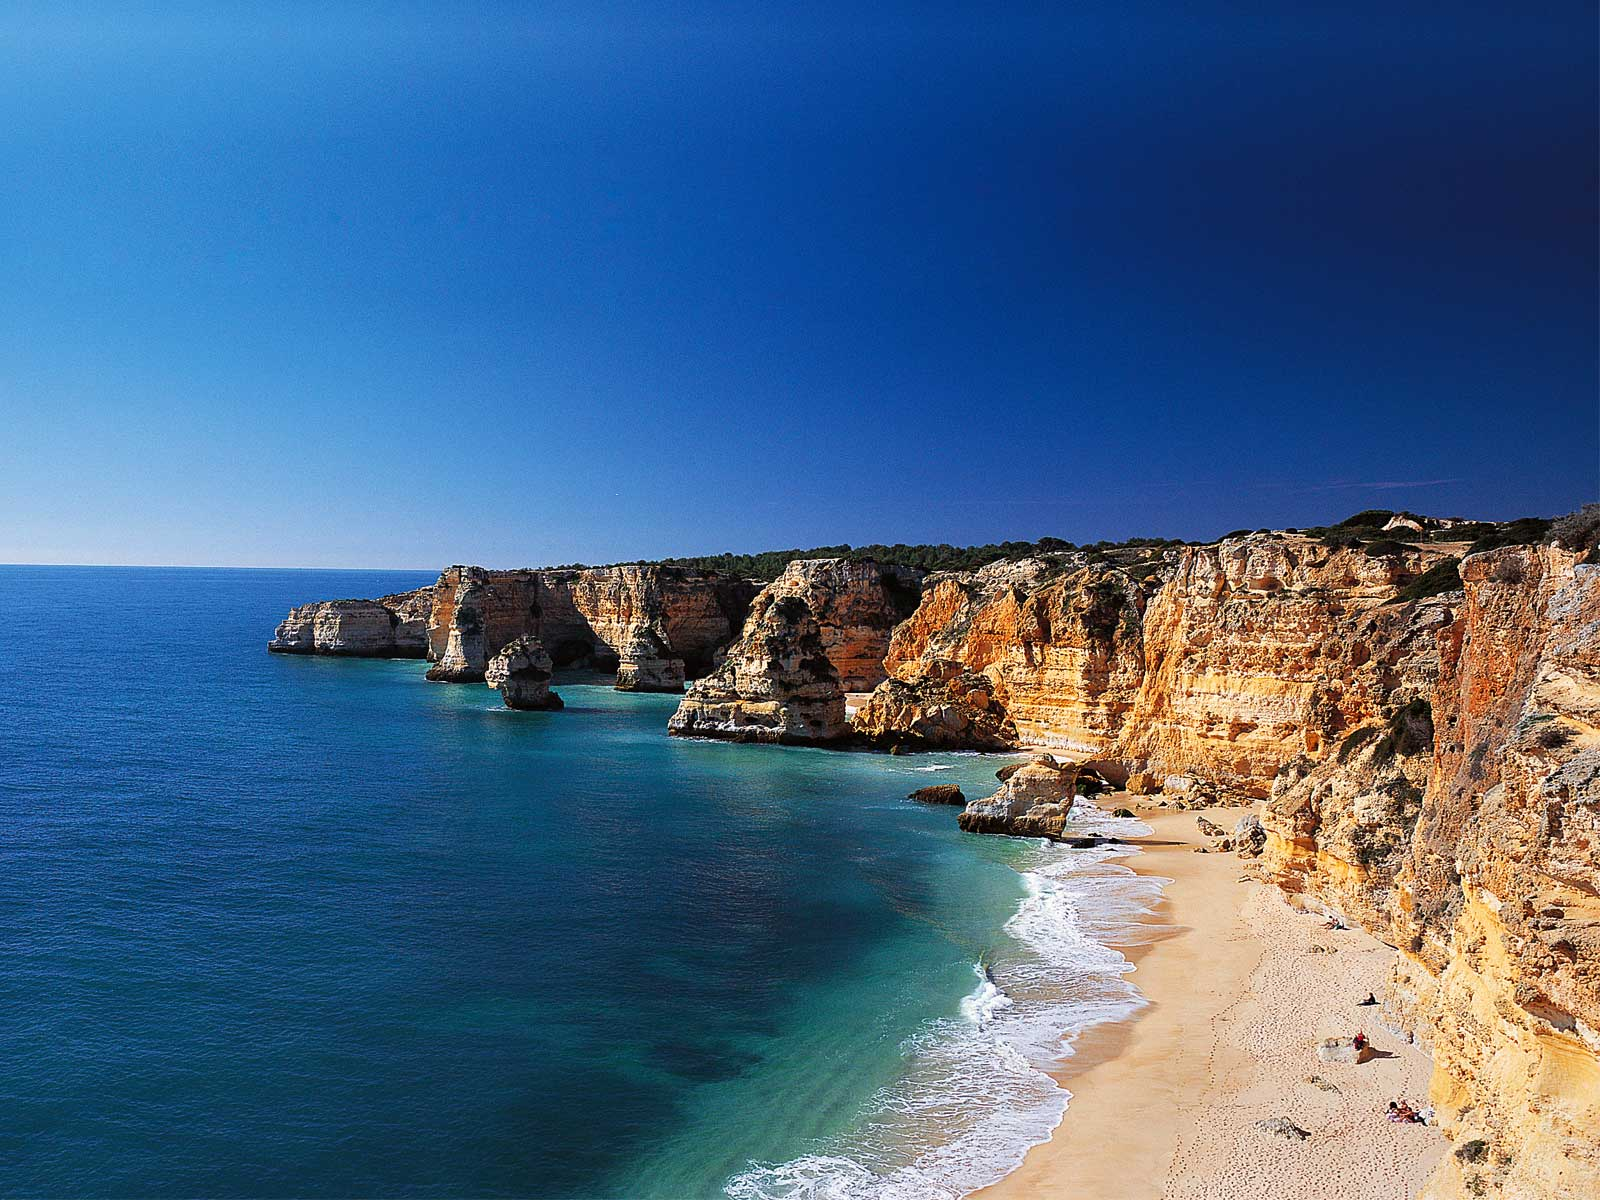 Faro Portugal  city images : algarve portugal via enjoy your holiday altente portugal via the cool ...